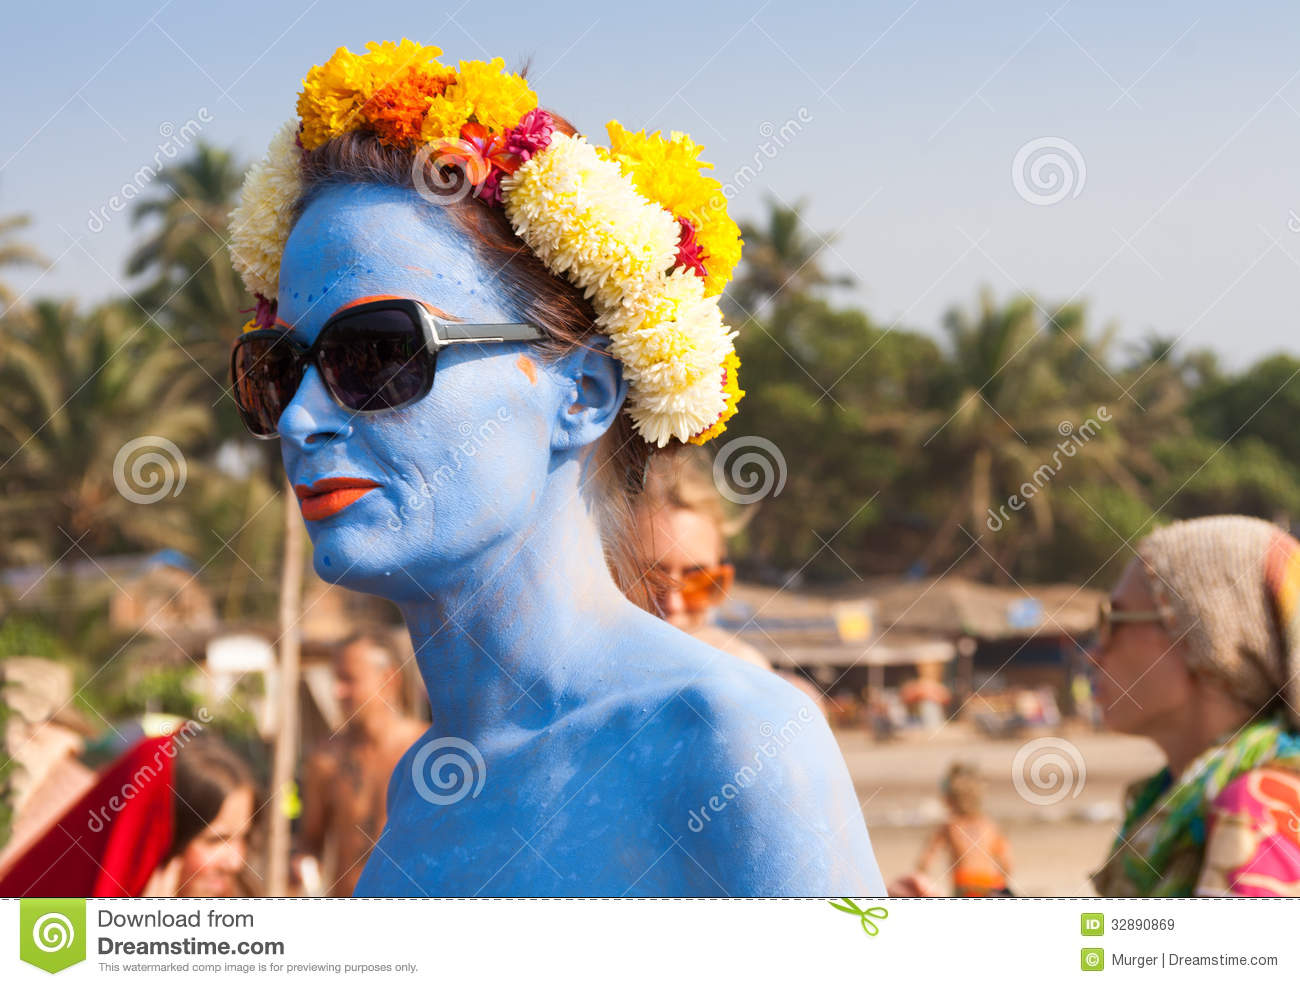 An Unidentified Woman With Blue Skin In A Flower Wreath At ...